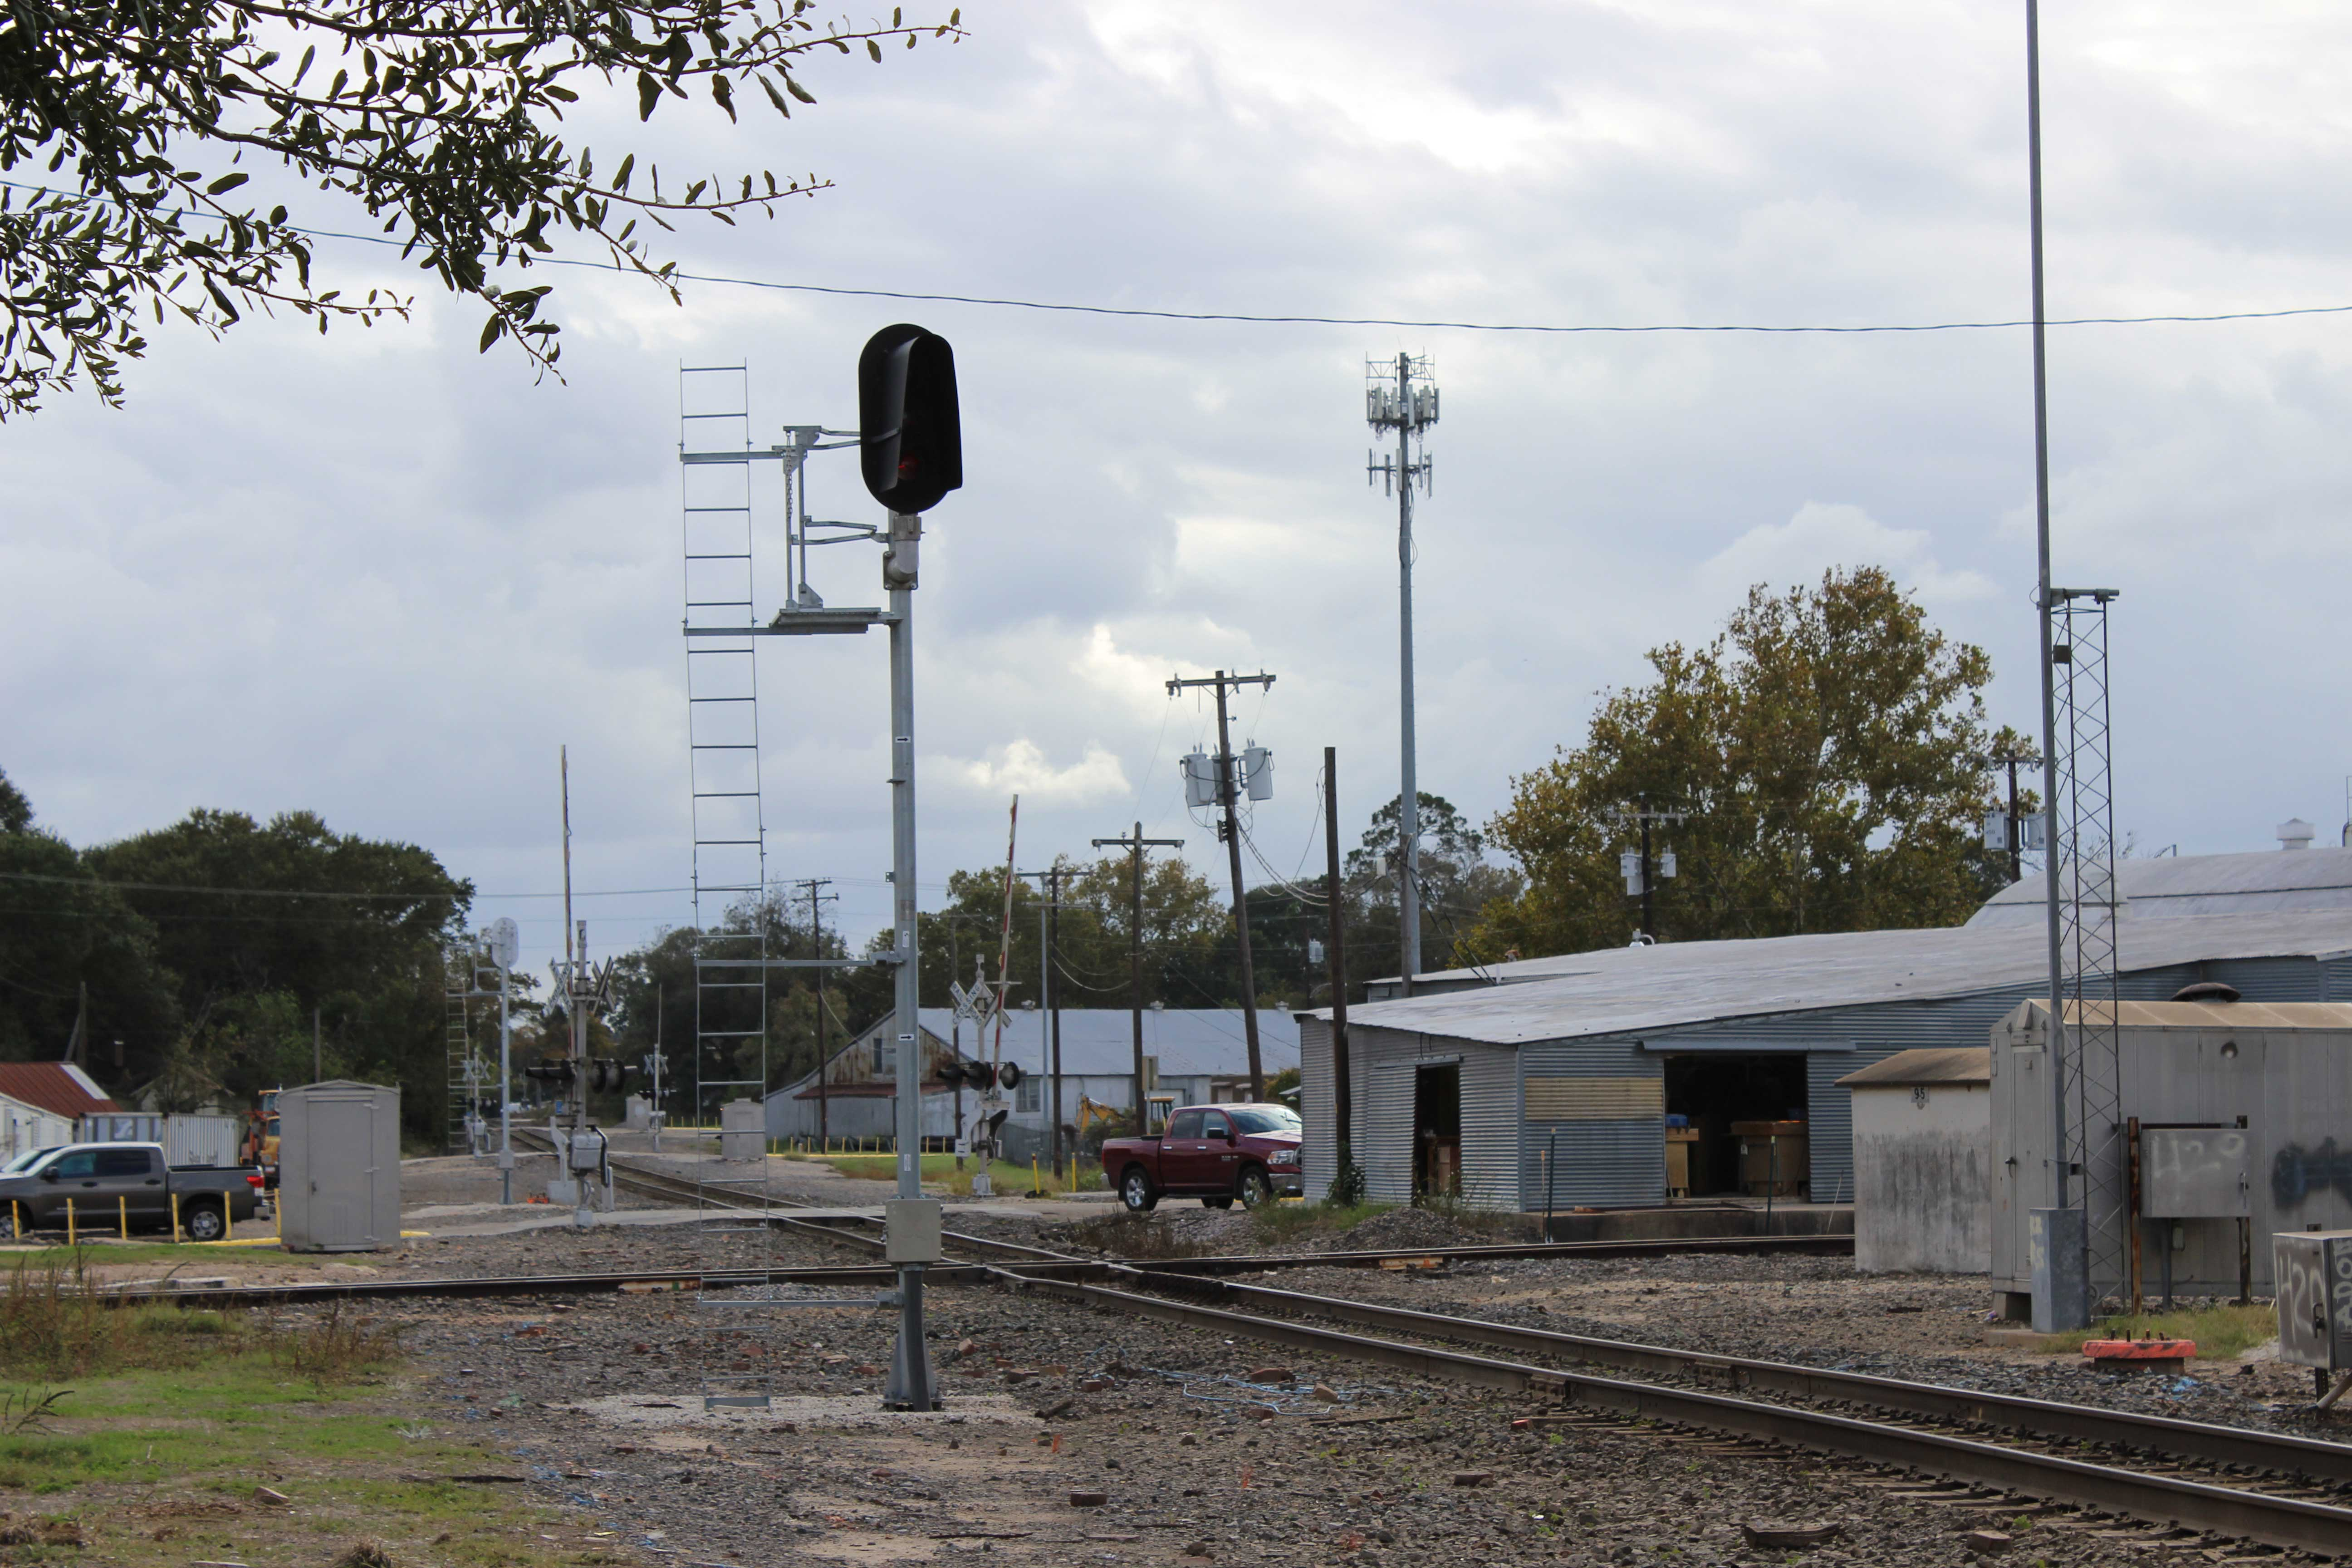 A new Vader signal stands guard over the diamond with a branch line near downtown Brenham.